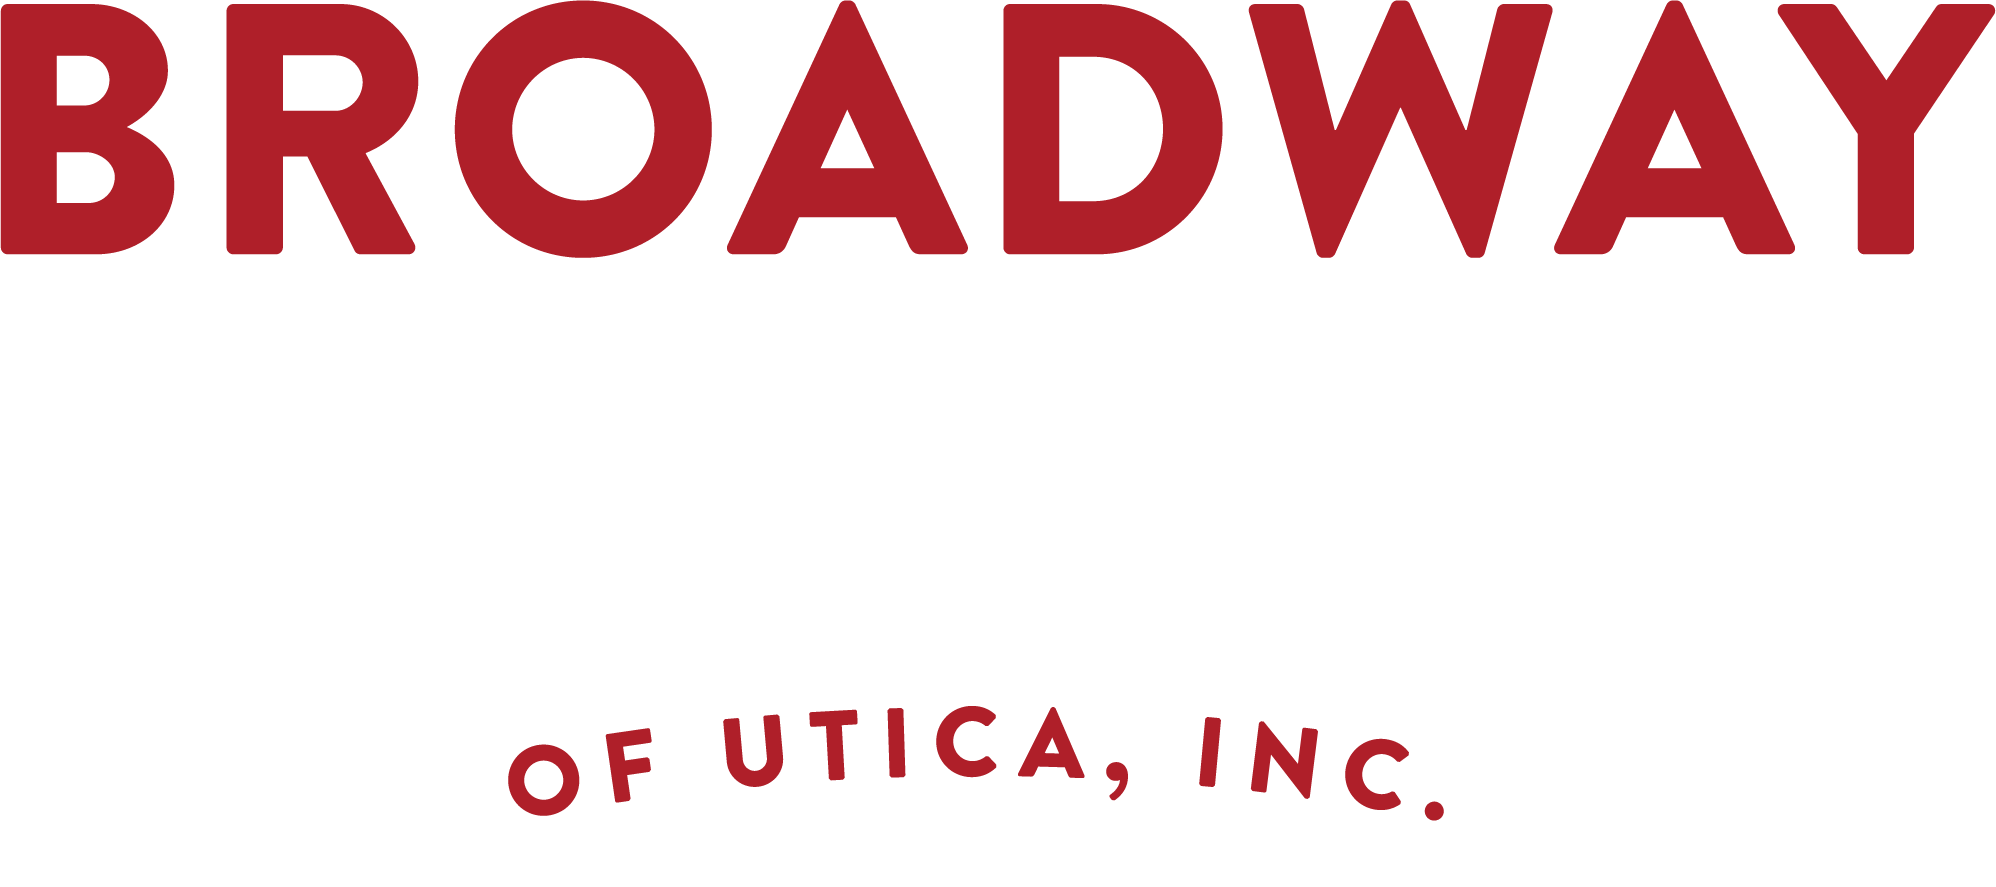 Broadway Theater League of Utica